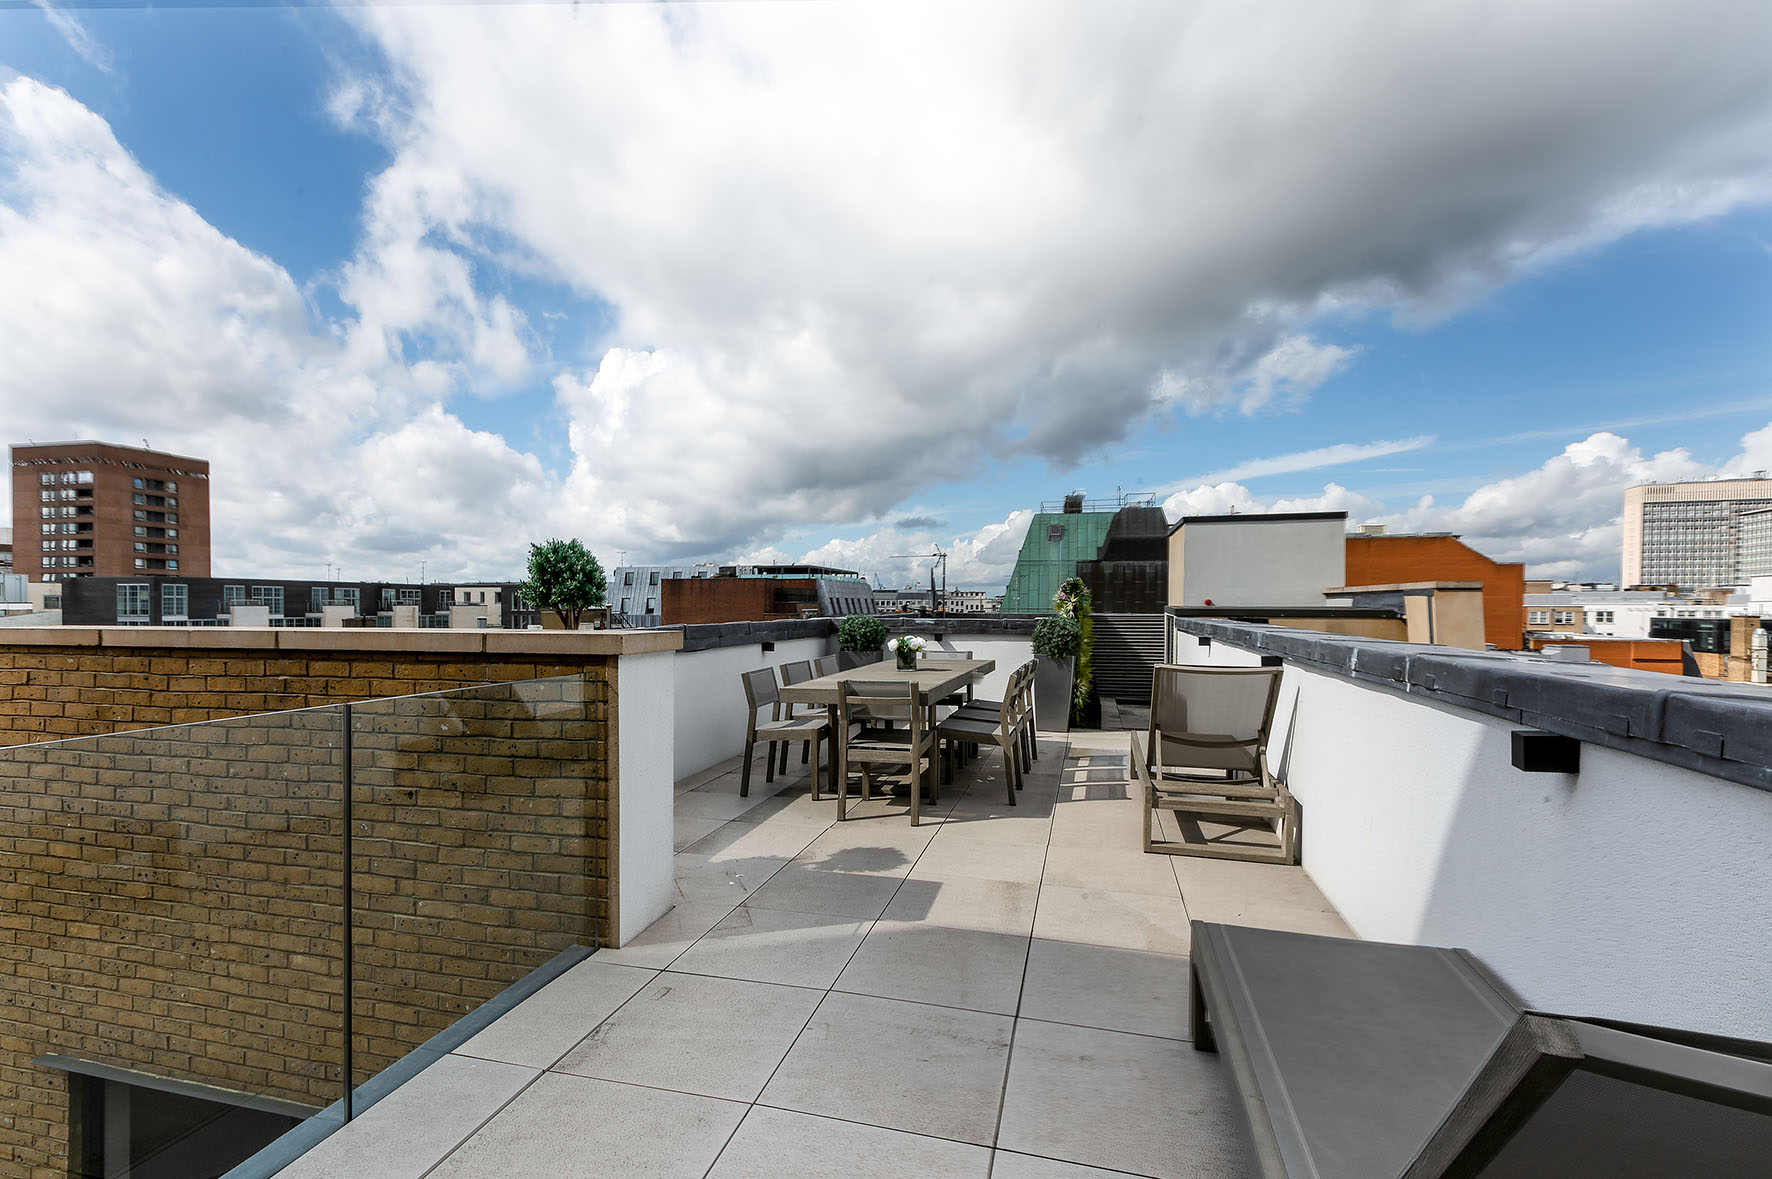 Lovelydays luxury service apartment rental - London - Soho - Great Marlborough St. IX - Lovelysuite - 2 bedrooms - 2 bathrooms - Huge terrace - 5 star apartment in london - 20513cea9fe1 - Lovelydays